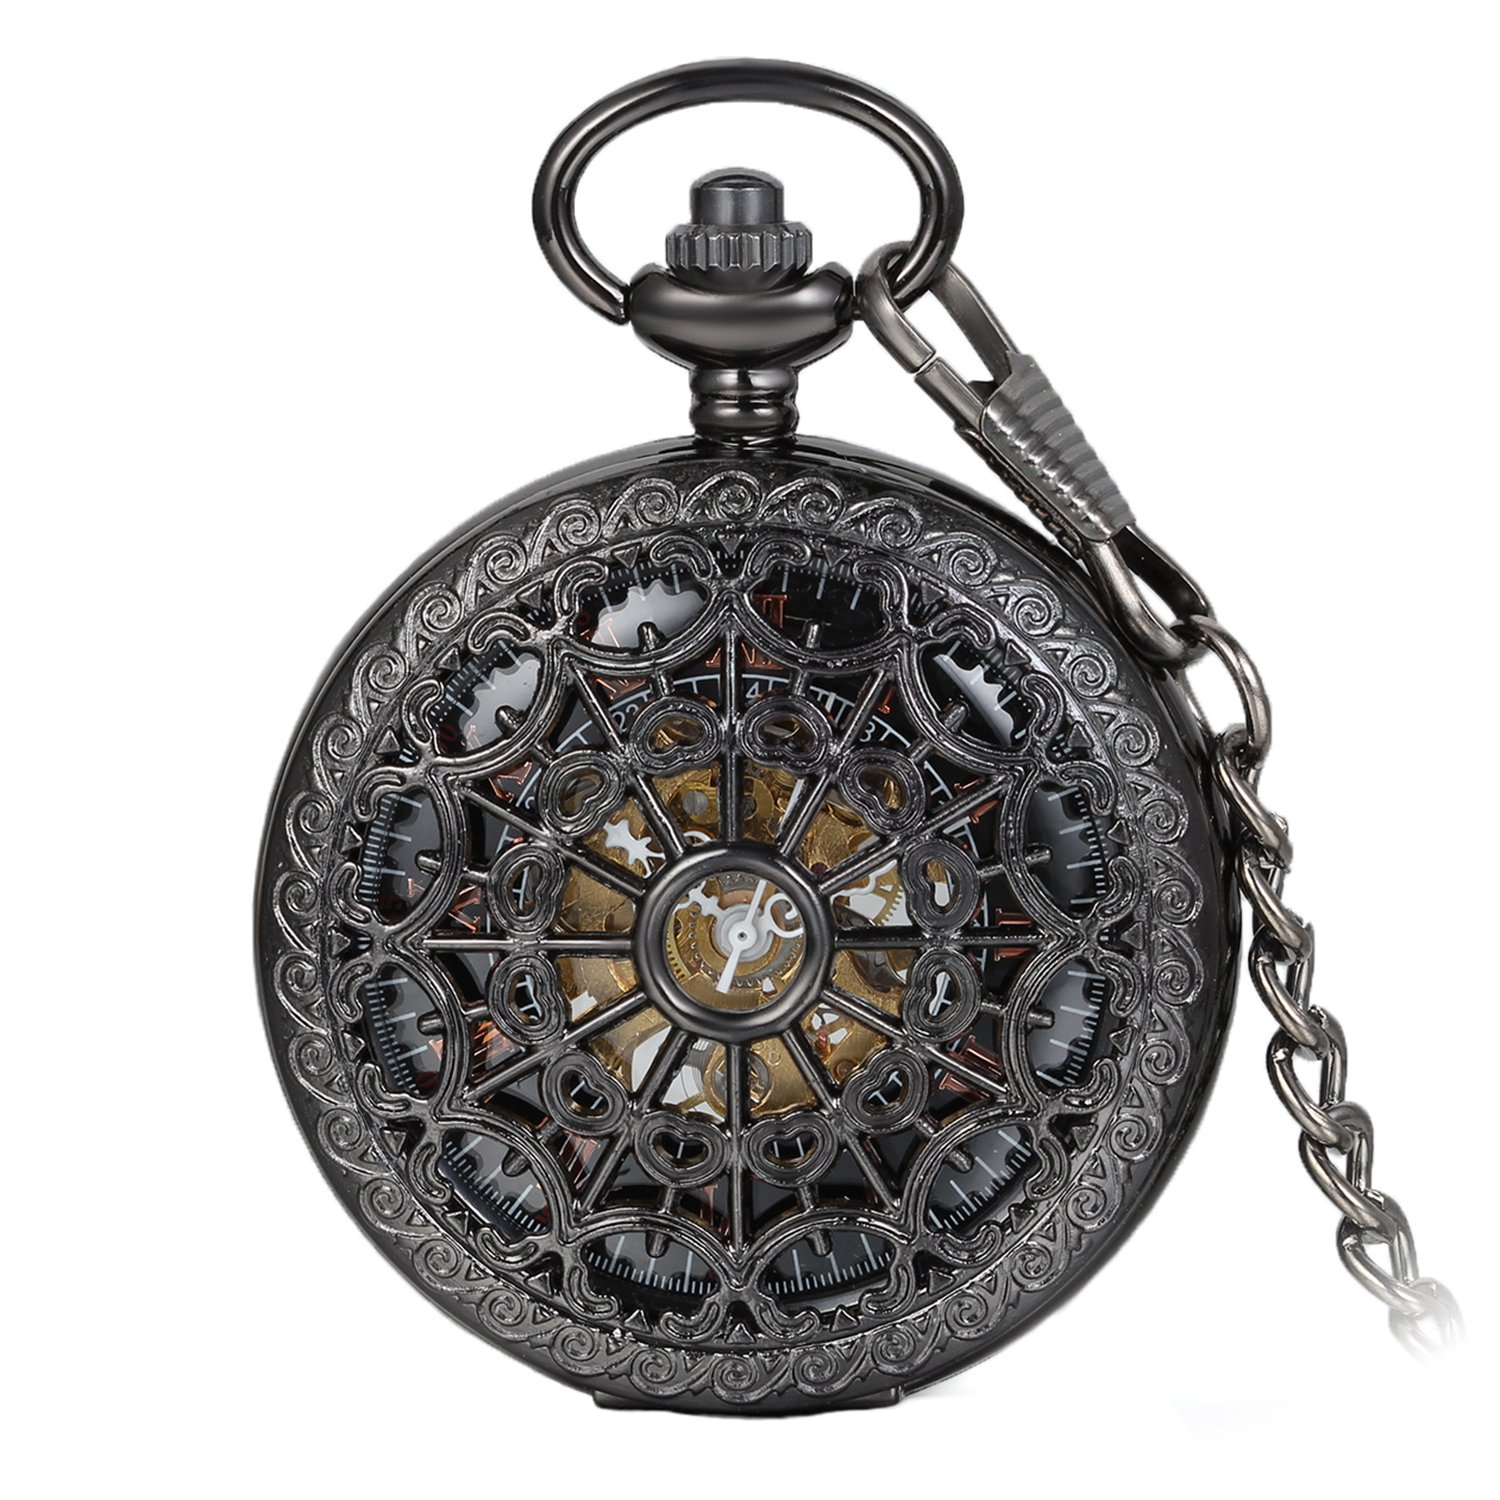 Avaner Unisex Antique Steampunk Black Skeleton Spider Web Pattern Hand Wind Mechanical Movement Roman Numeral Pocket Watch Gift with 14 inches Chain